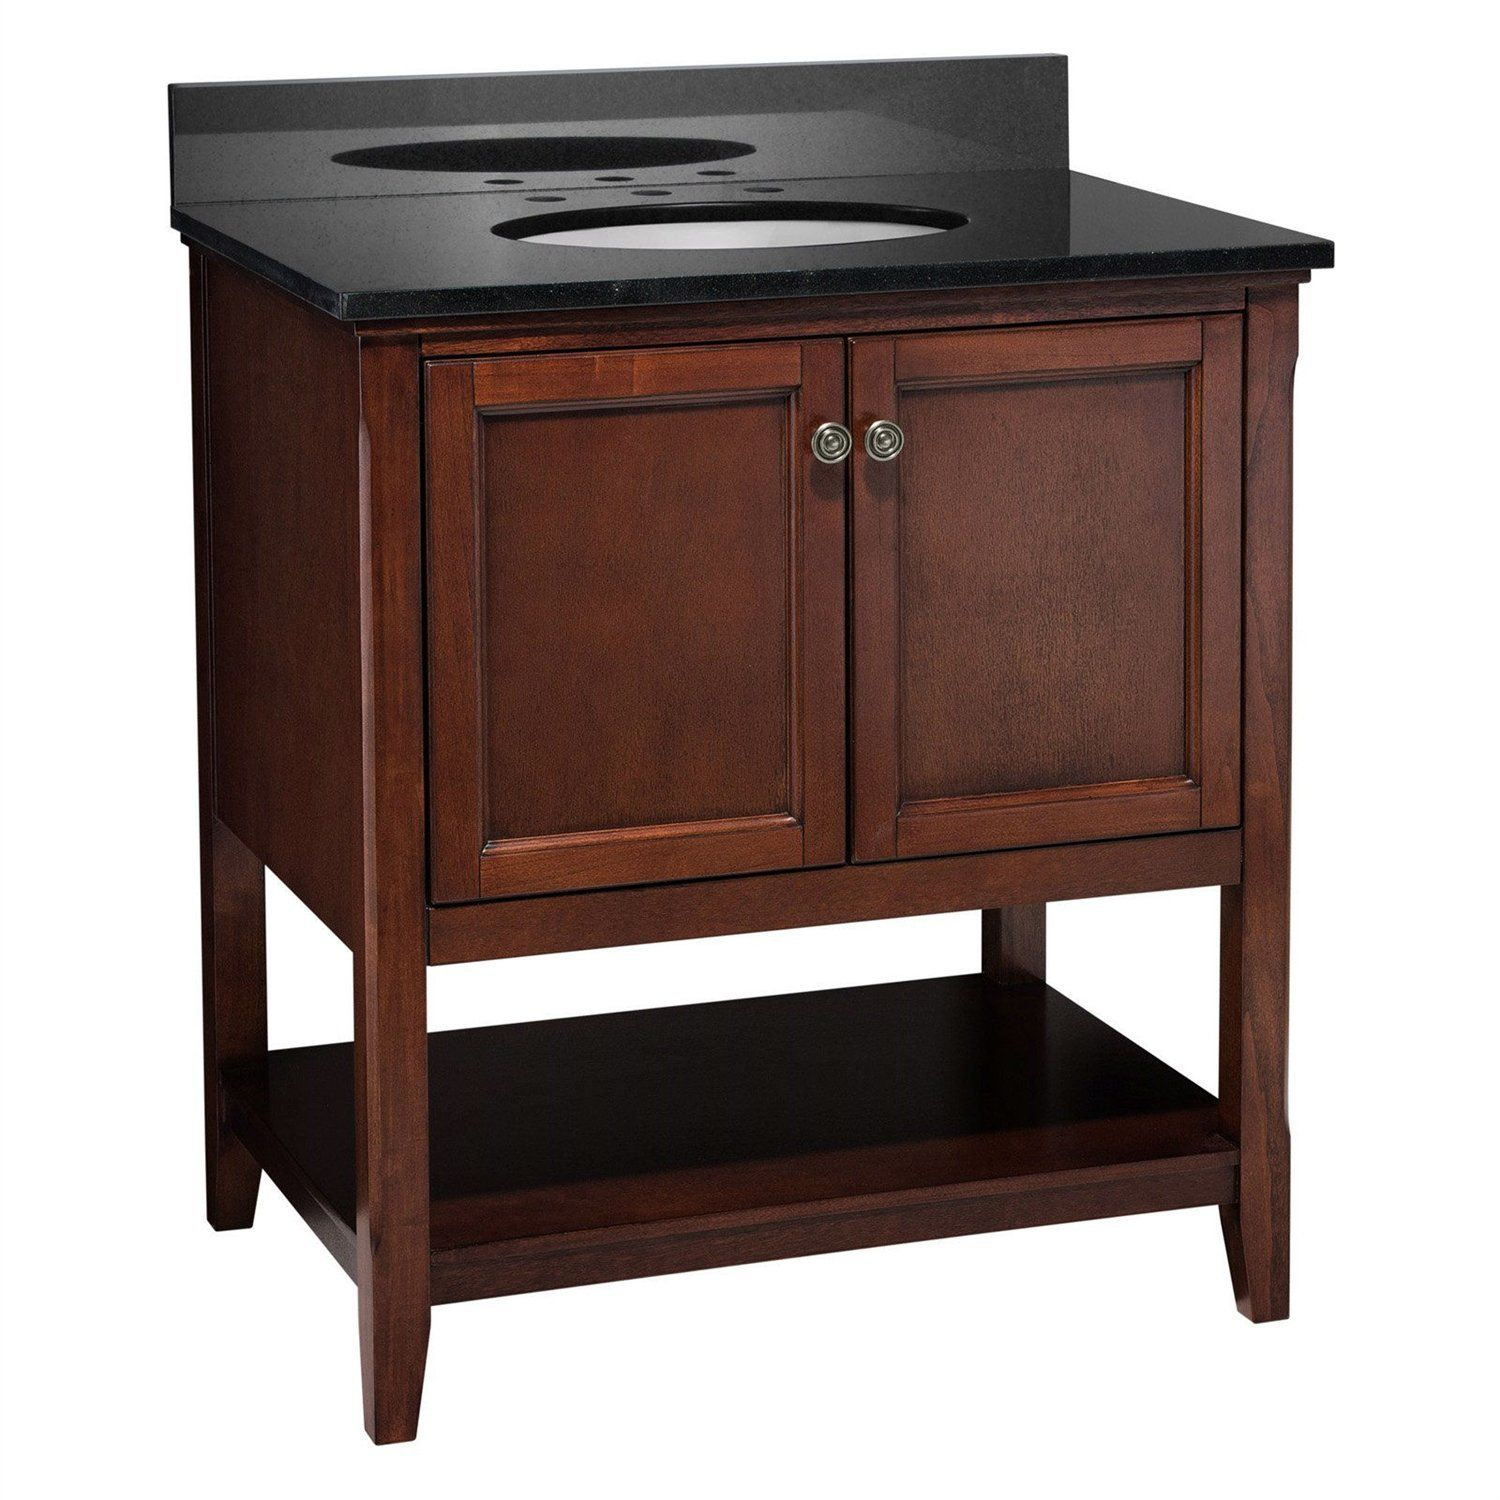 Traditional Style Solid Wood Bathroom Vanity In Chestnut Finish In